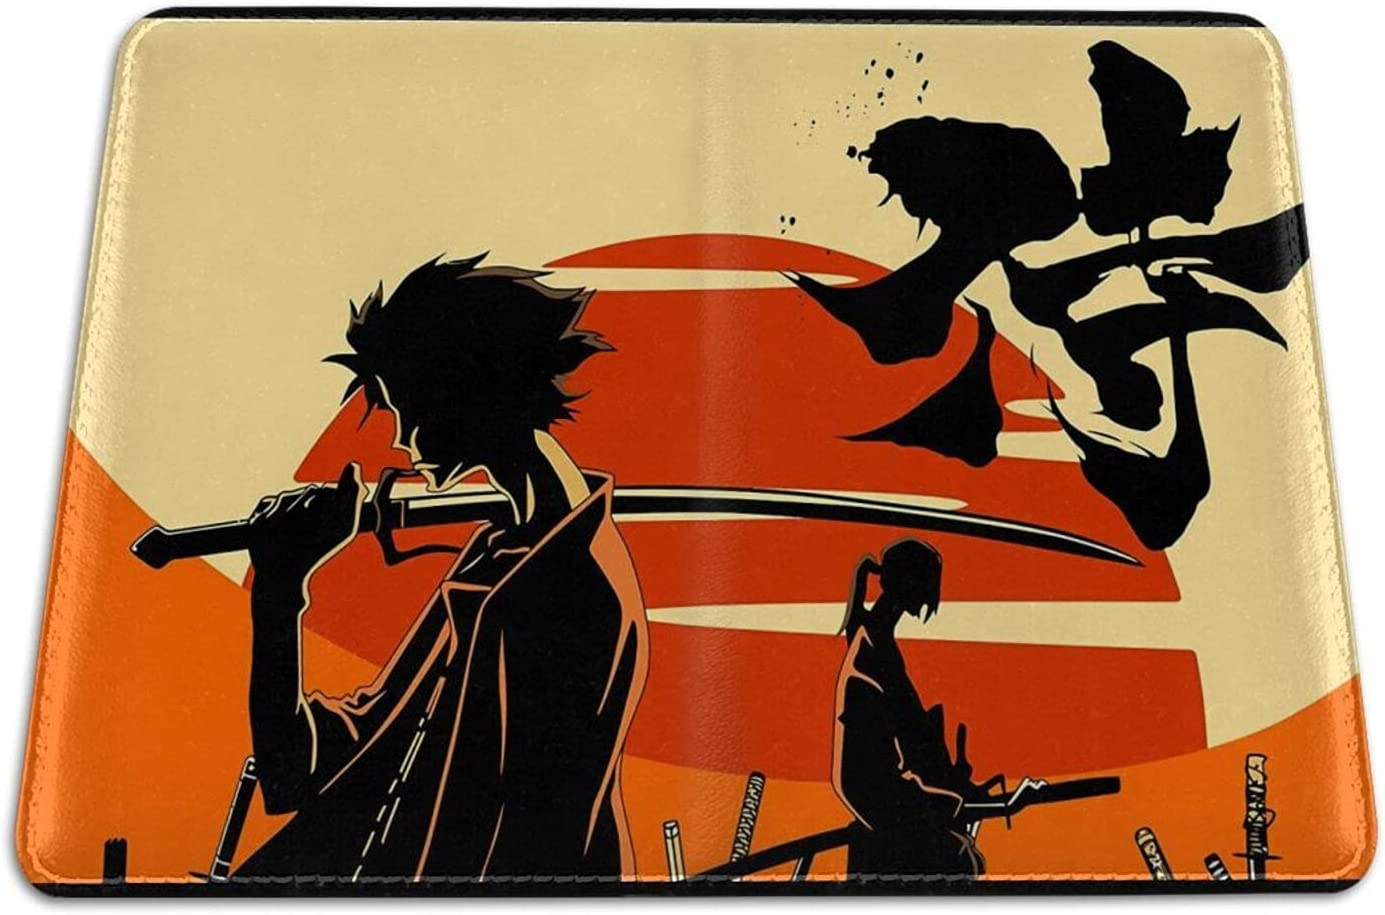 Samurai Champloo Outlet SALE Anime Passport Cover Holder With Card Wallet Price reduction Sl